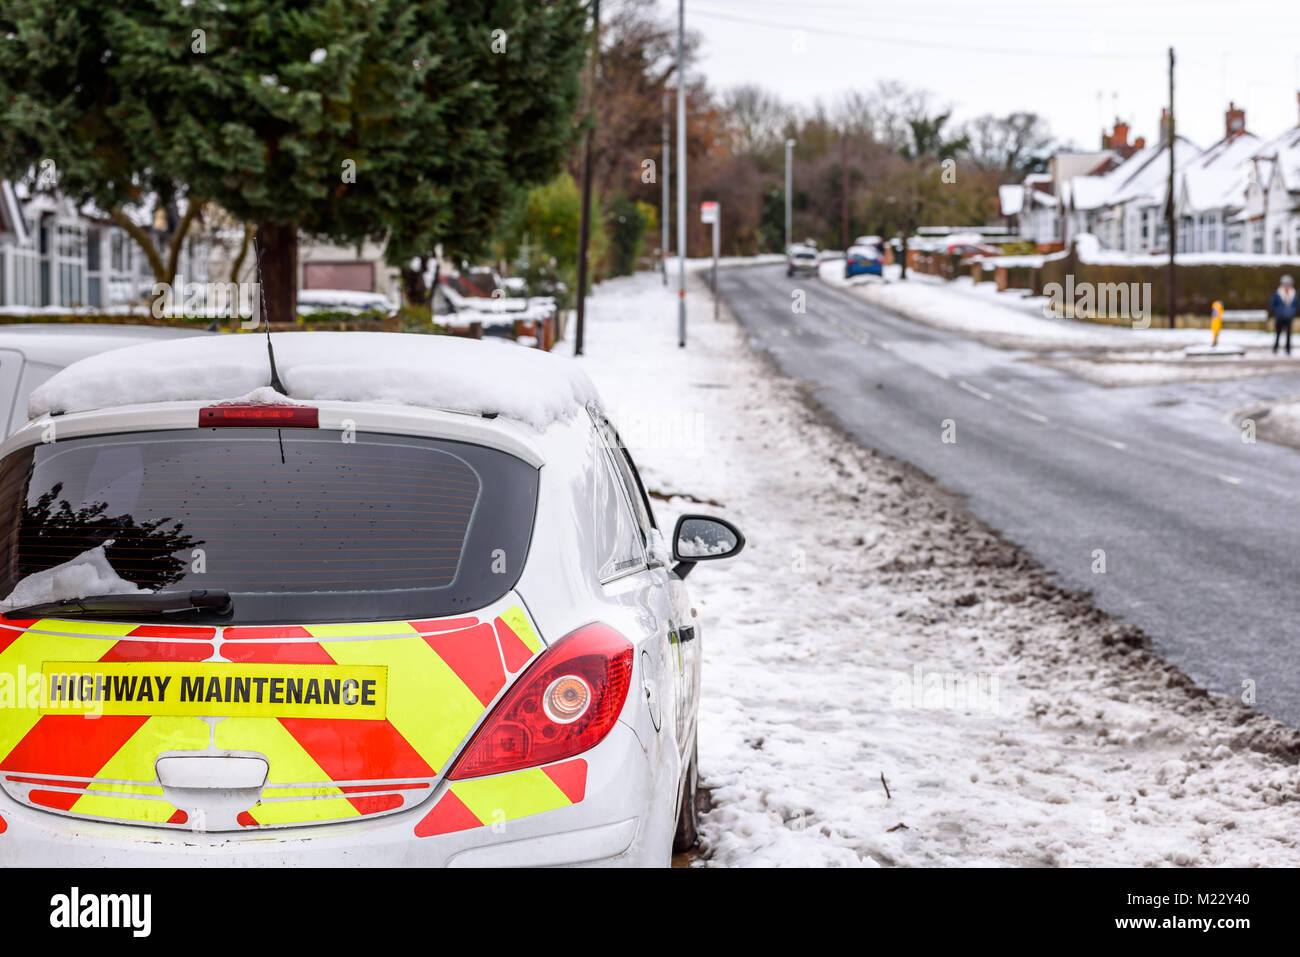 Day view UK Motorway Highway Maintenance car parked on snowy road - Stock Image